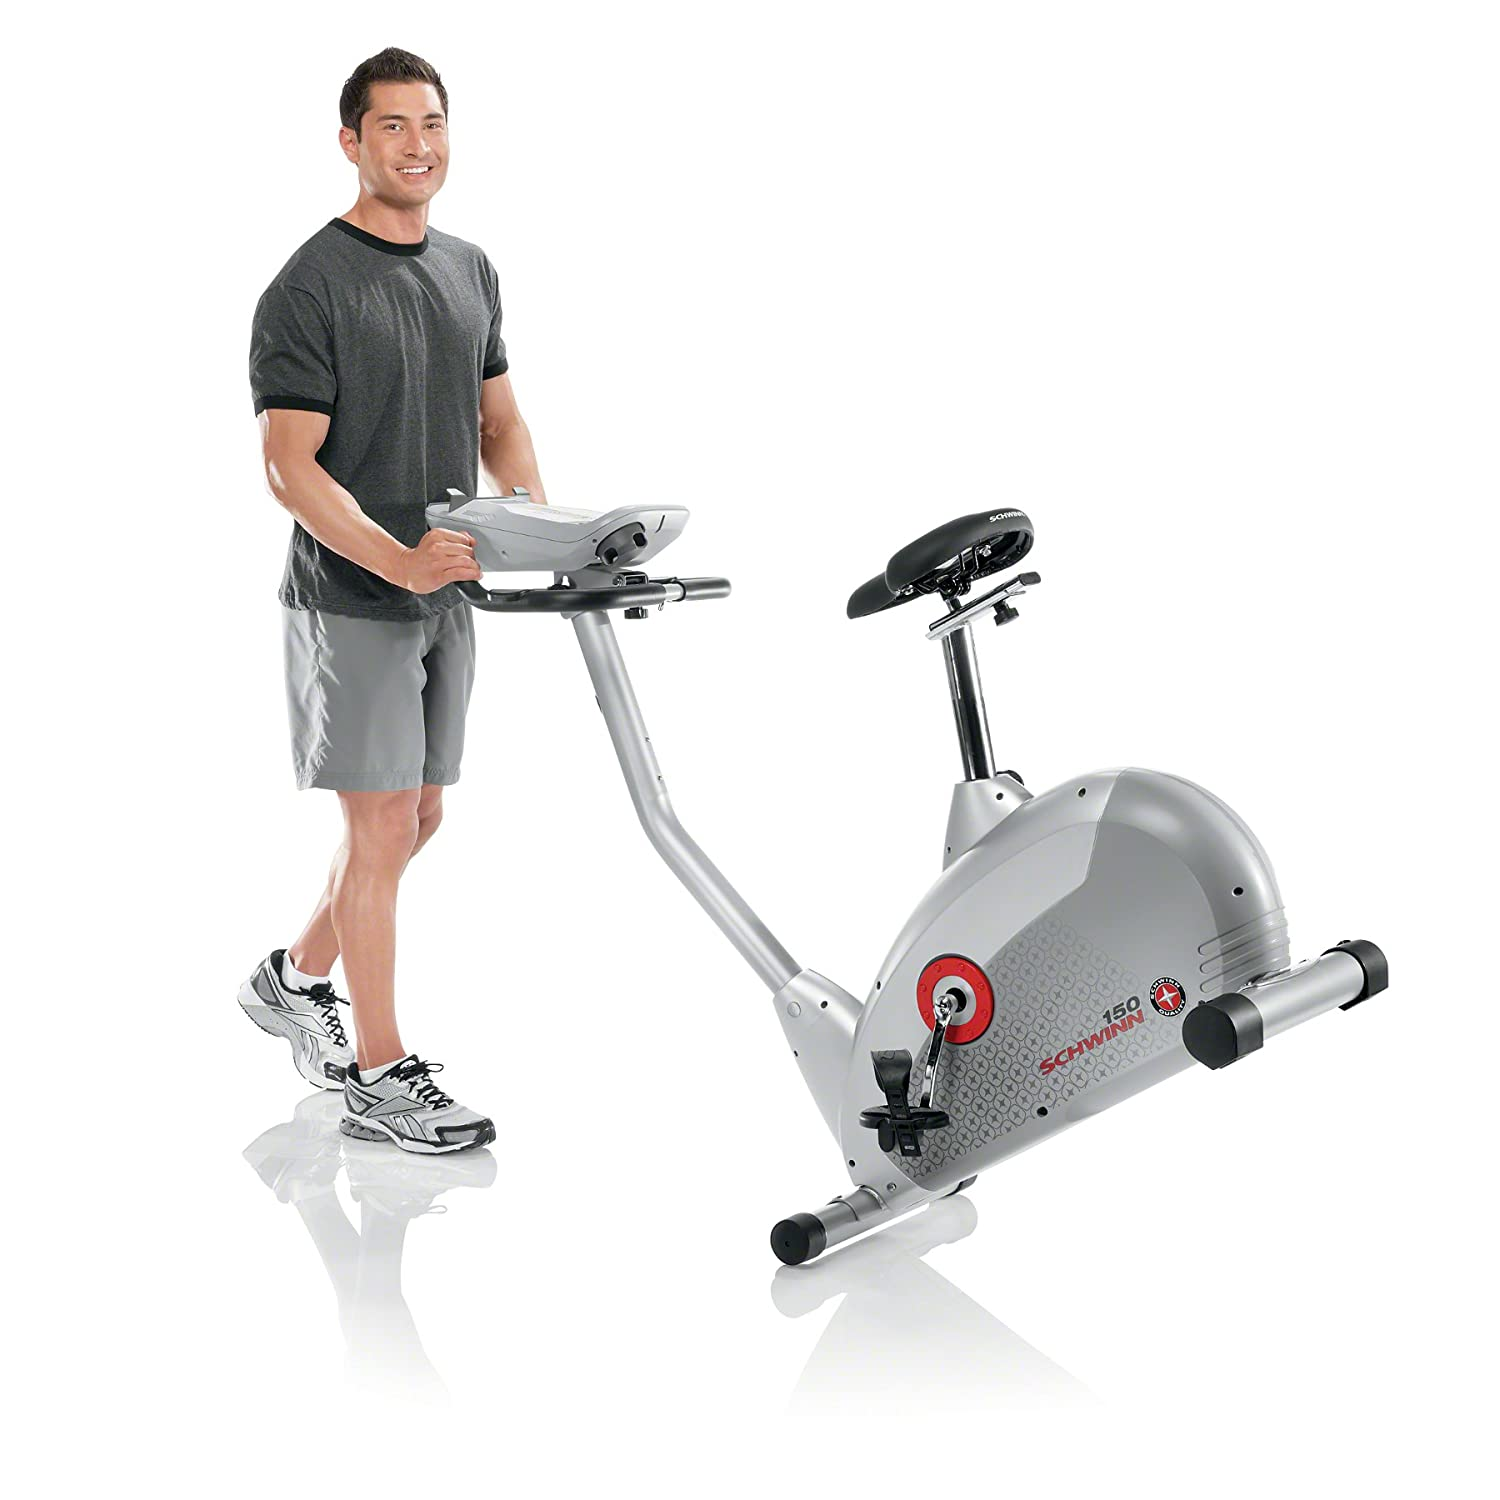 amazon com schwinn 150 upright exercise bike sports outdoors rh amazon com schwinn biofit 150 manual schwinn 150 exercise bike manual